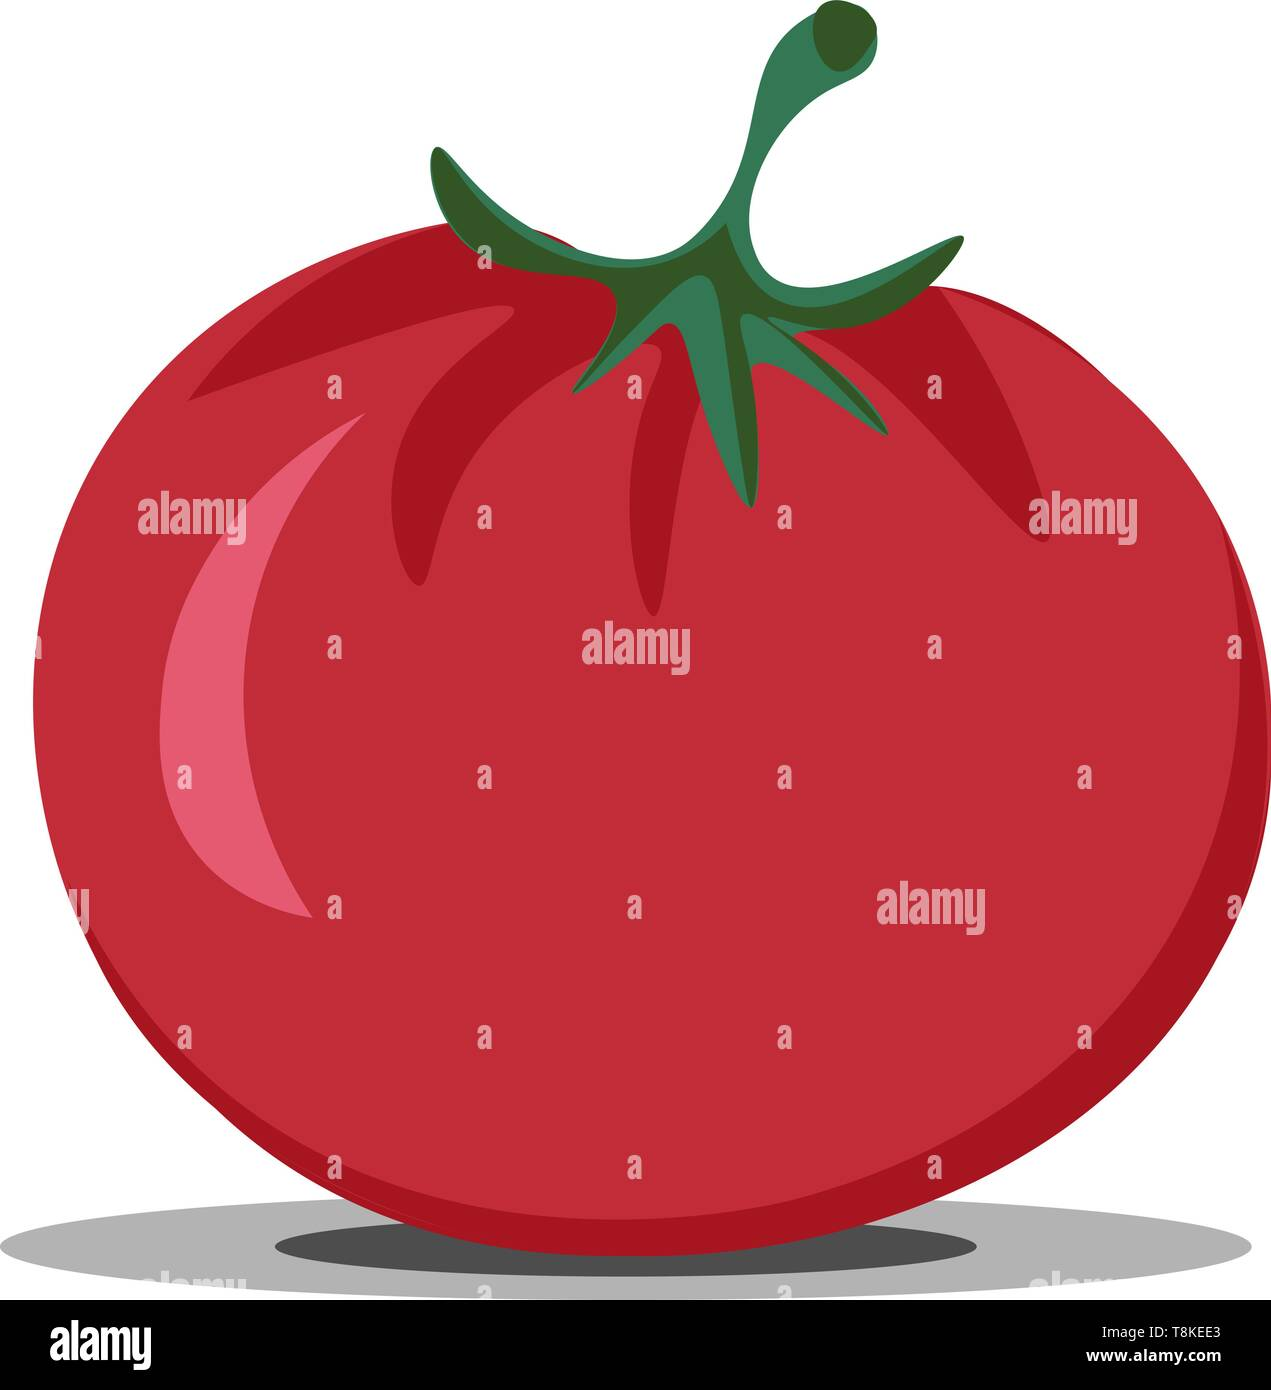 Clipart of the shiny and glossy, short, round and stout, fresh juicy tomato topped with a green stalk is in the ripened stage and ready to get into sa - Stock Vector